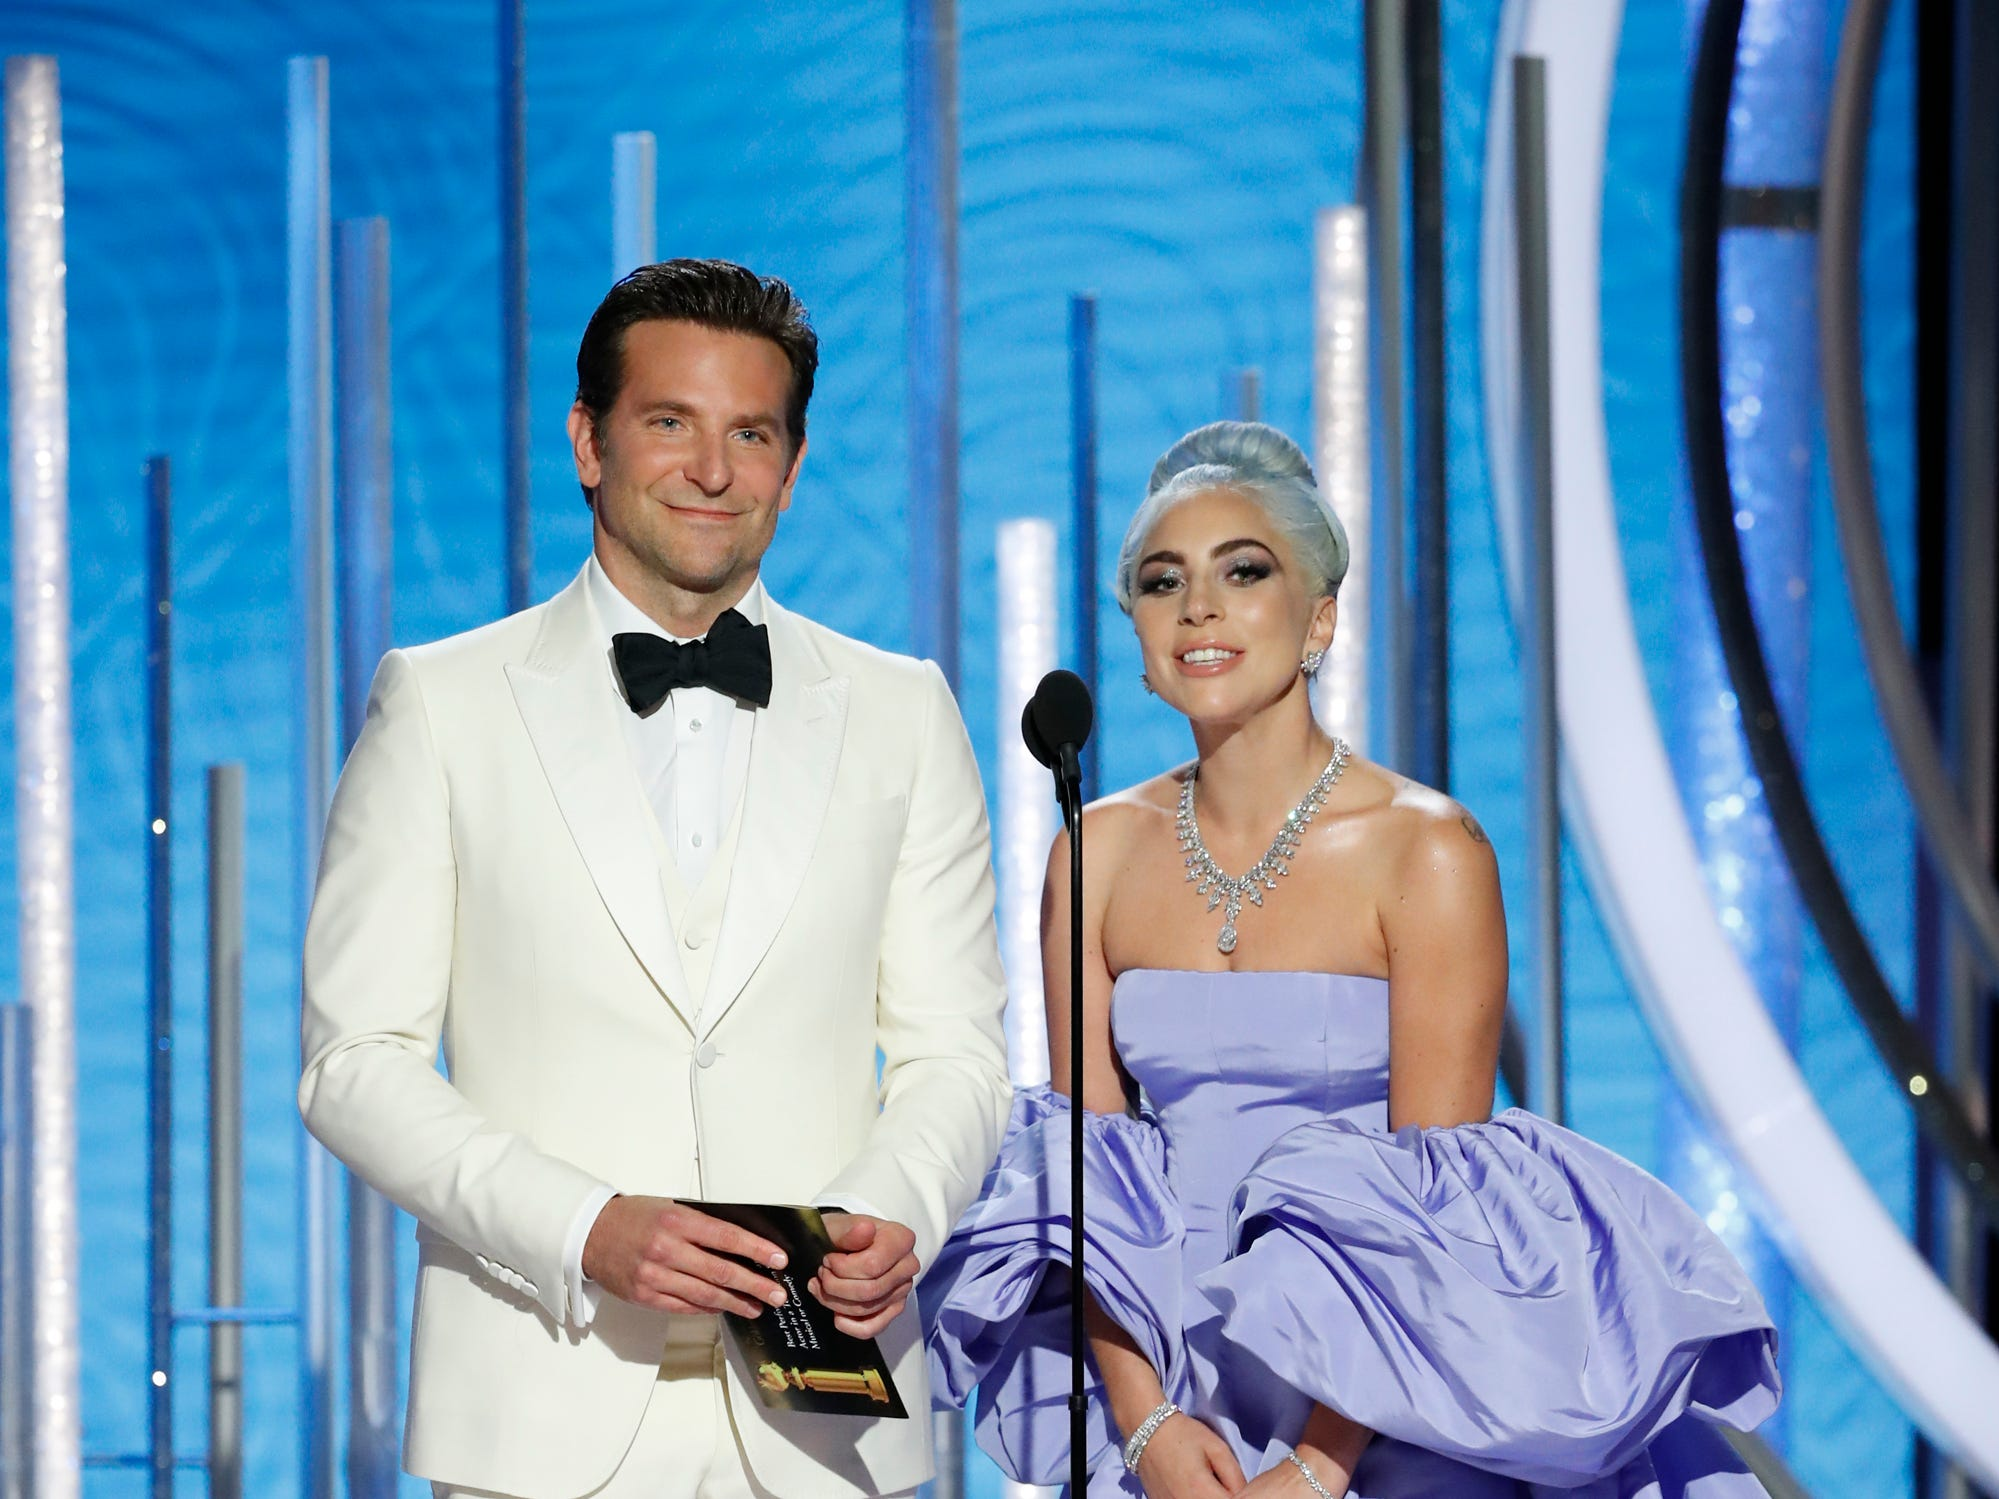 This image released by NBC shows Bradley Cooper, left, and Lady Gaga presenting the award for best actor in a TV comedy series at the 76th Annual Golden Globe Awards at the Beverly Hilton Hotel.